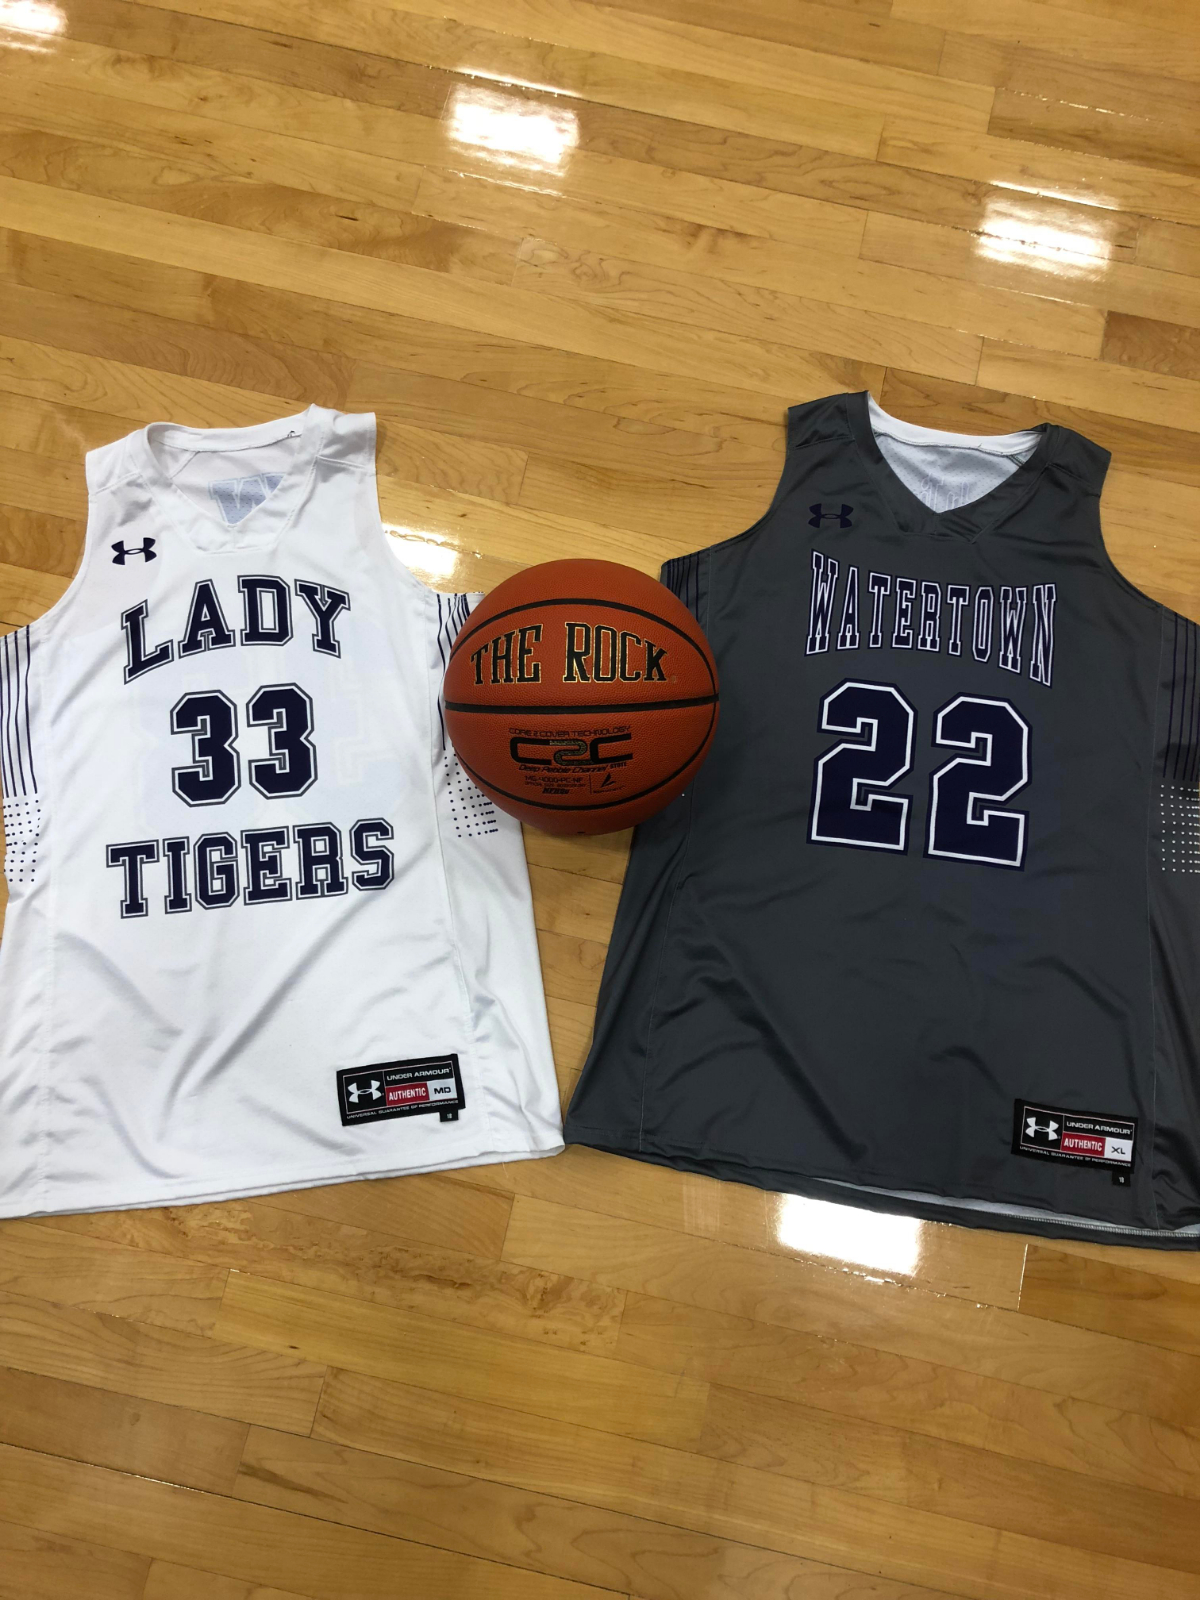 Lady Tigers Fall Short to Smith County